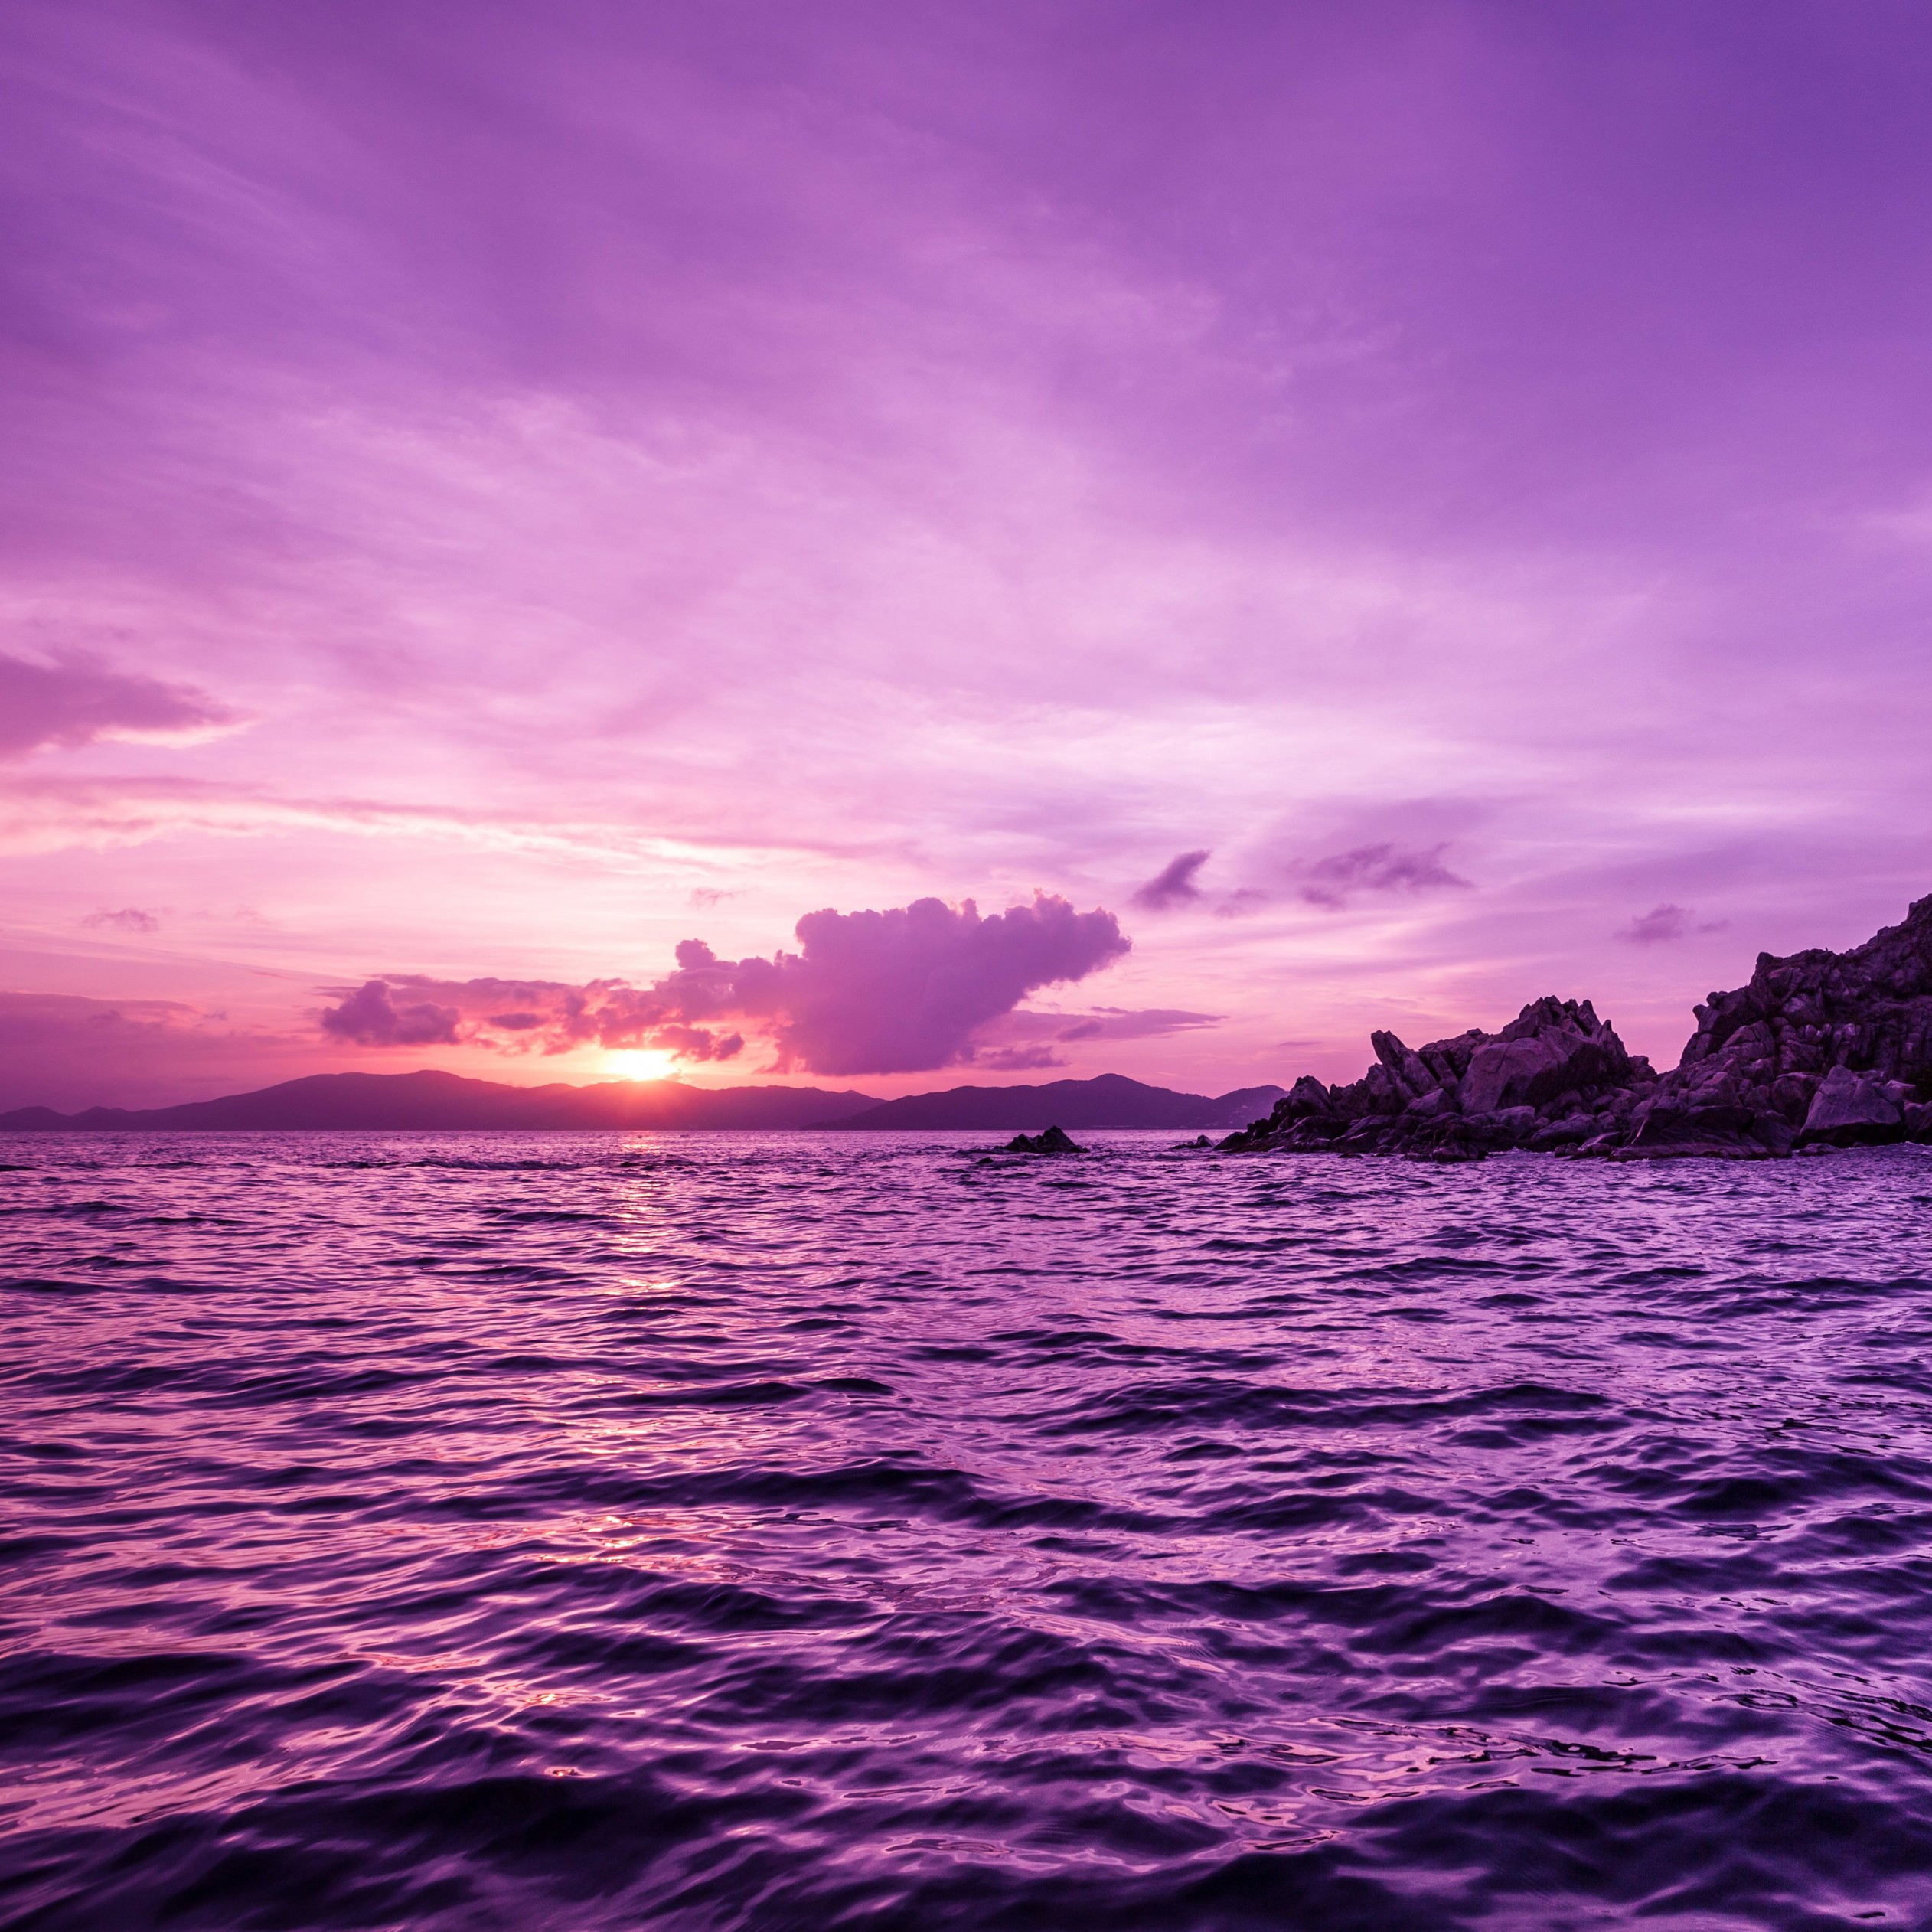 Pelican Island Sunset, British Virgin Islands Wallpaper for Apple iPad mini 2